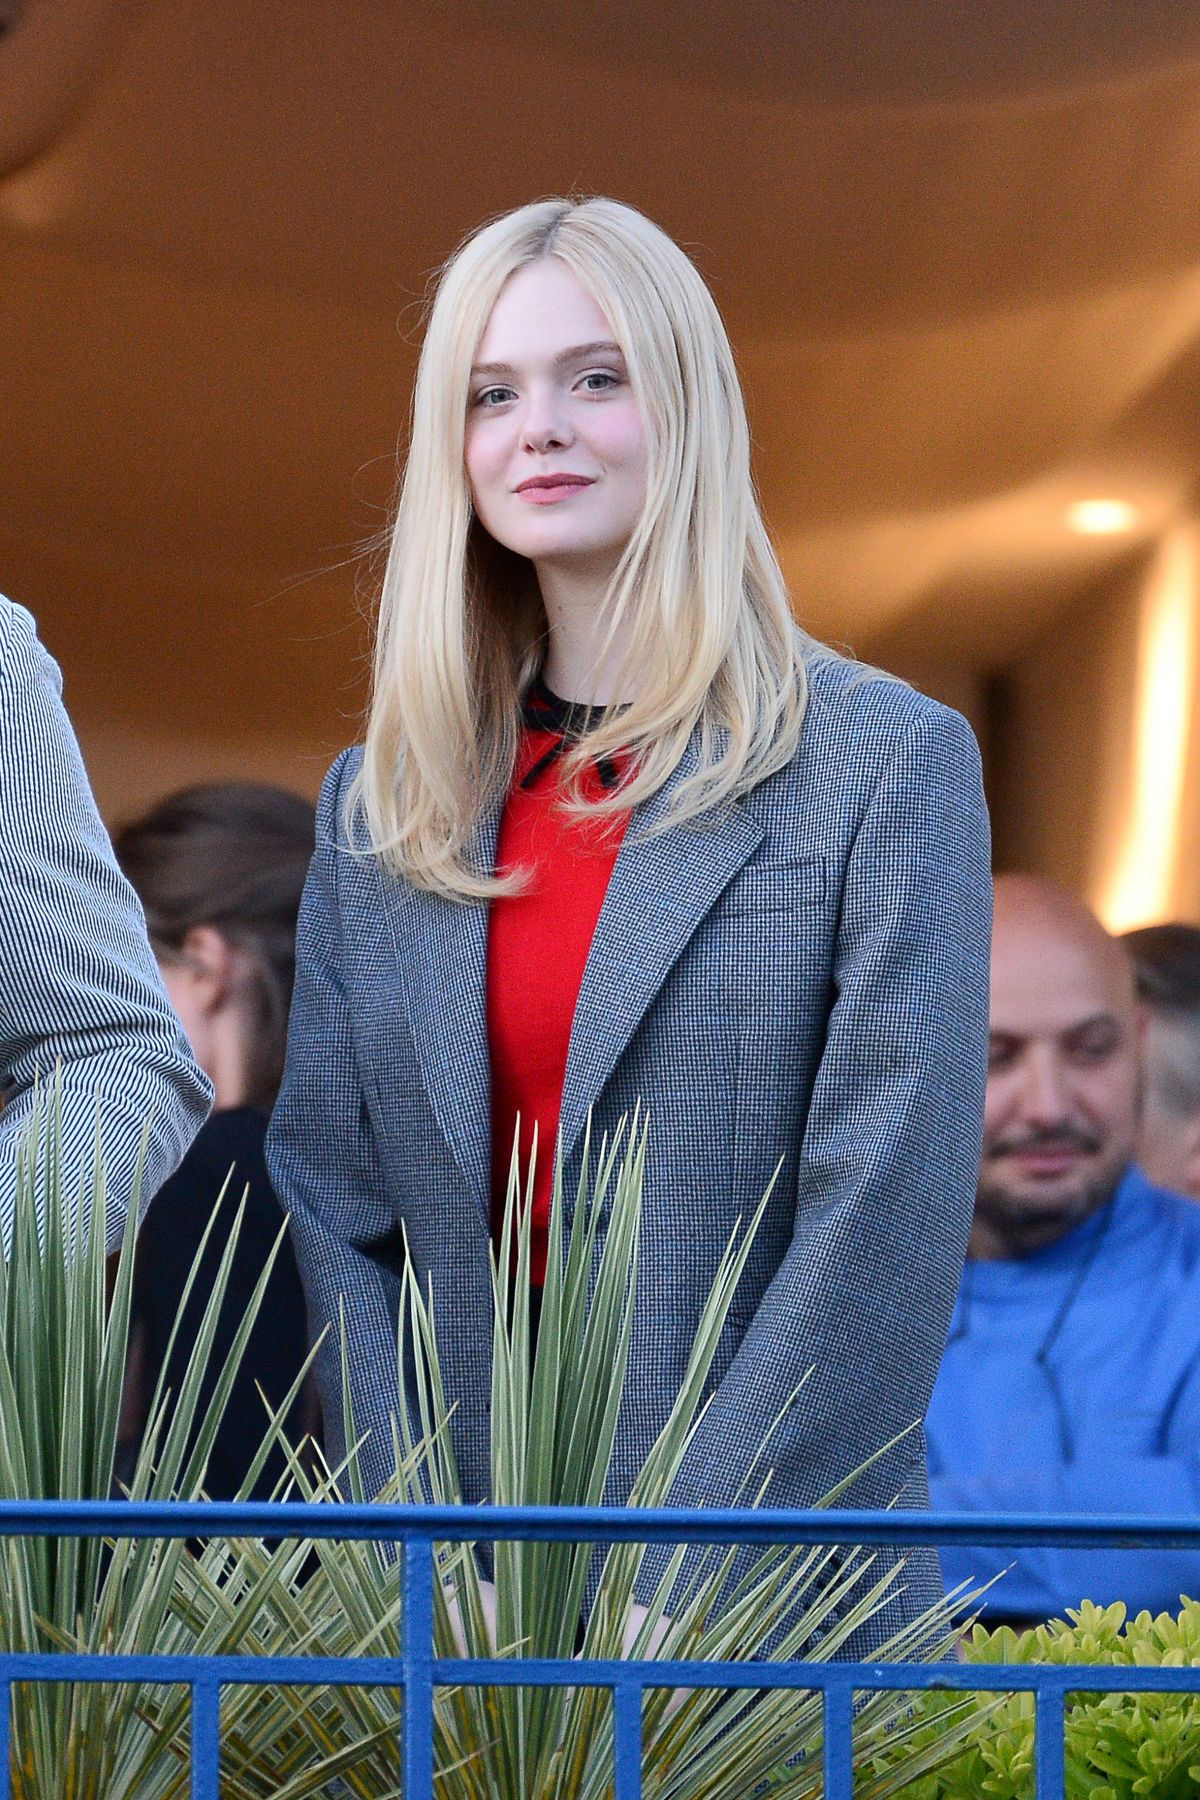 ELLE FANNING at Martinez Hotel in Cannes 05/13/2019 ...